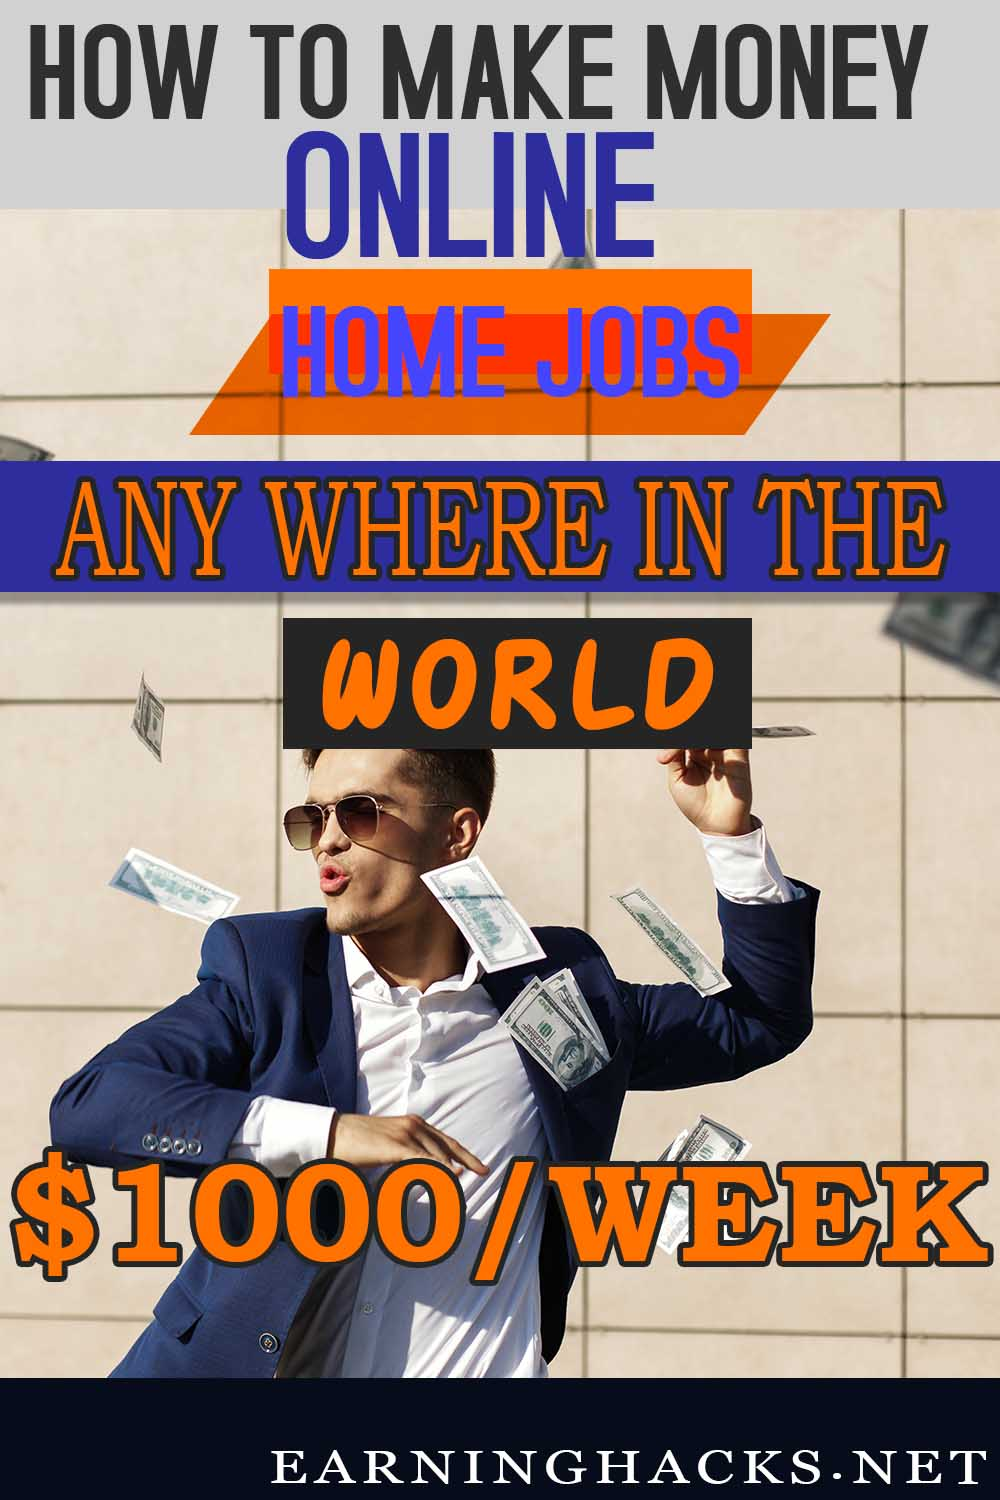 How To Make Money Online (Home Jobs)